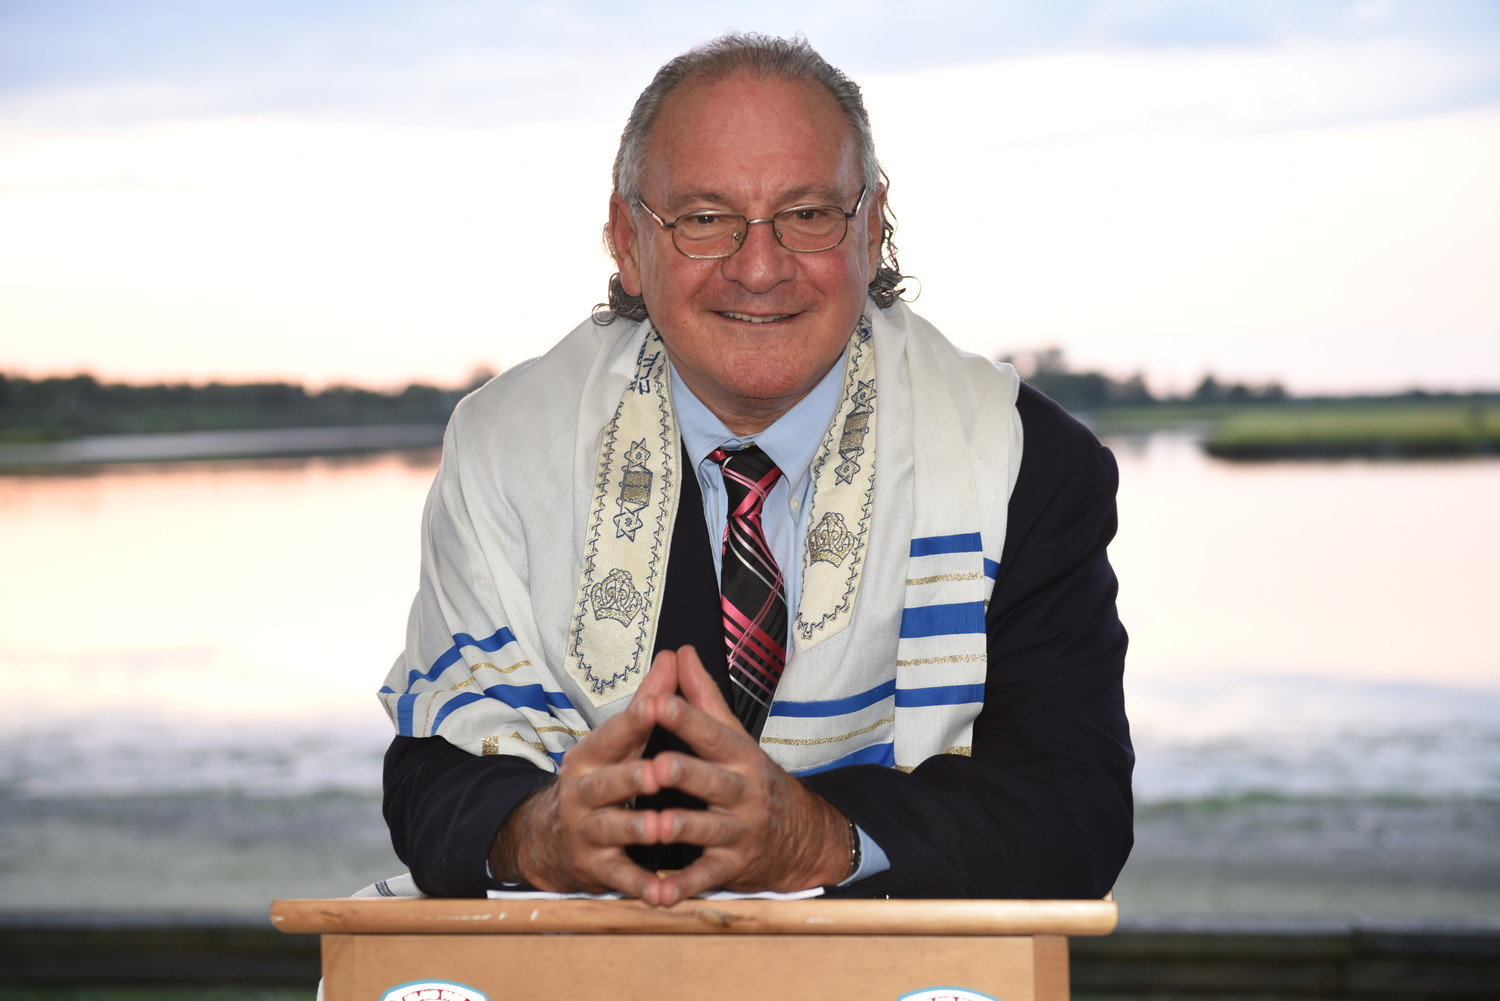 Rabbi Paul Hoffman